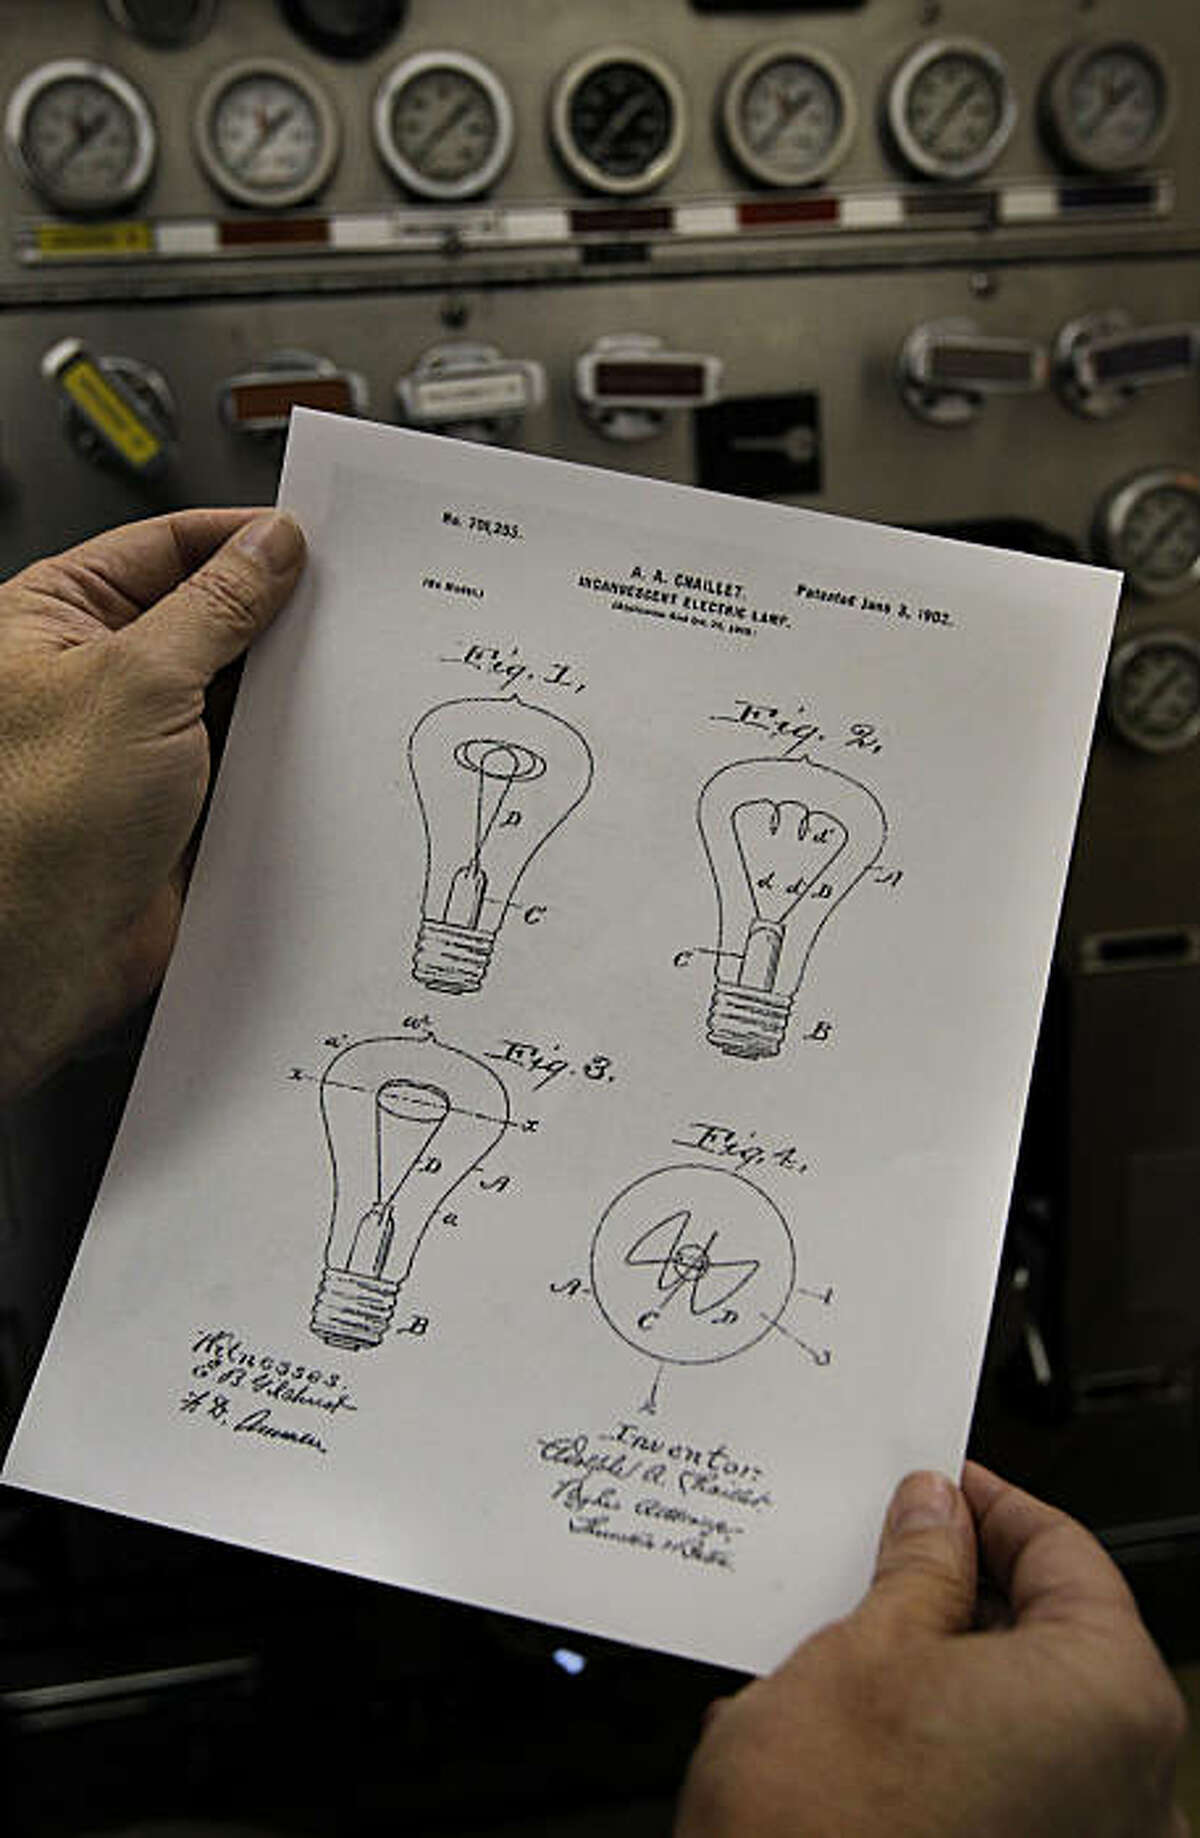 A patent for the light bulb was applied for by Adolph Chaillet of Shelby Lamp Works and approved in 1902. The longest burning light bulb, as declared by the Guinness Book of World Records and Ripley's Believe-It-or-Not, hangs from the ceiling of Livermore fire Station #6 on Thursday Feb. 3, 2011, in Livermore, Ca. The light bulb was first switched on at fire department hose cart house on L Street in Livermore in 1901.